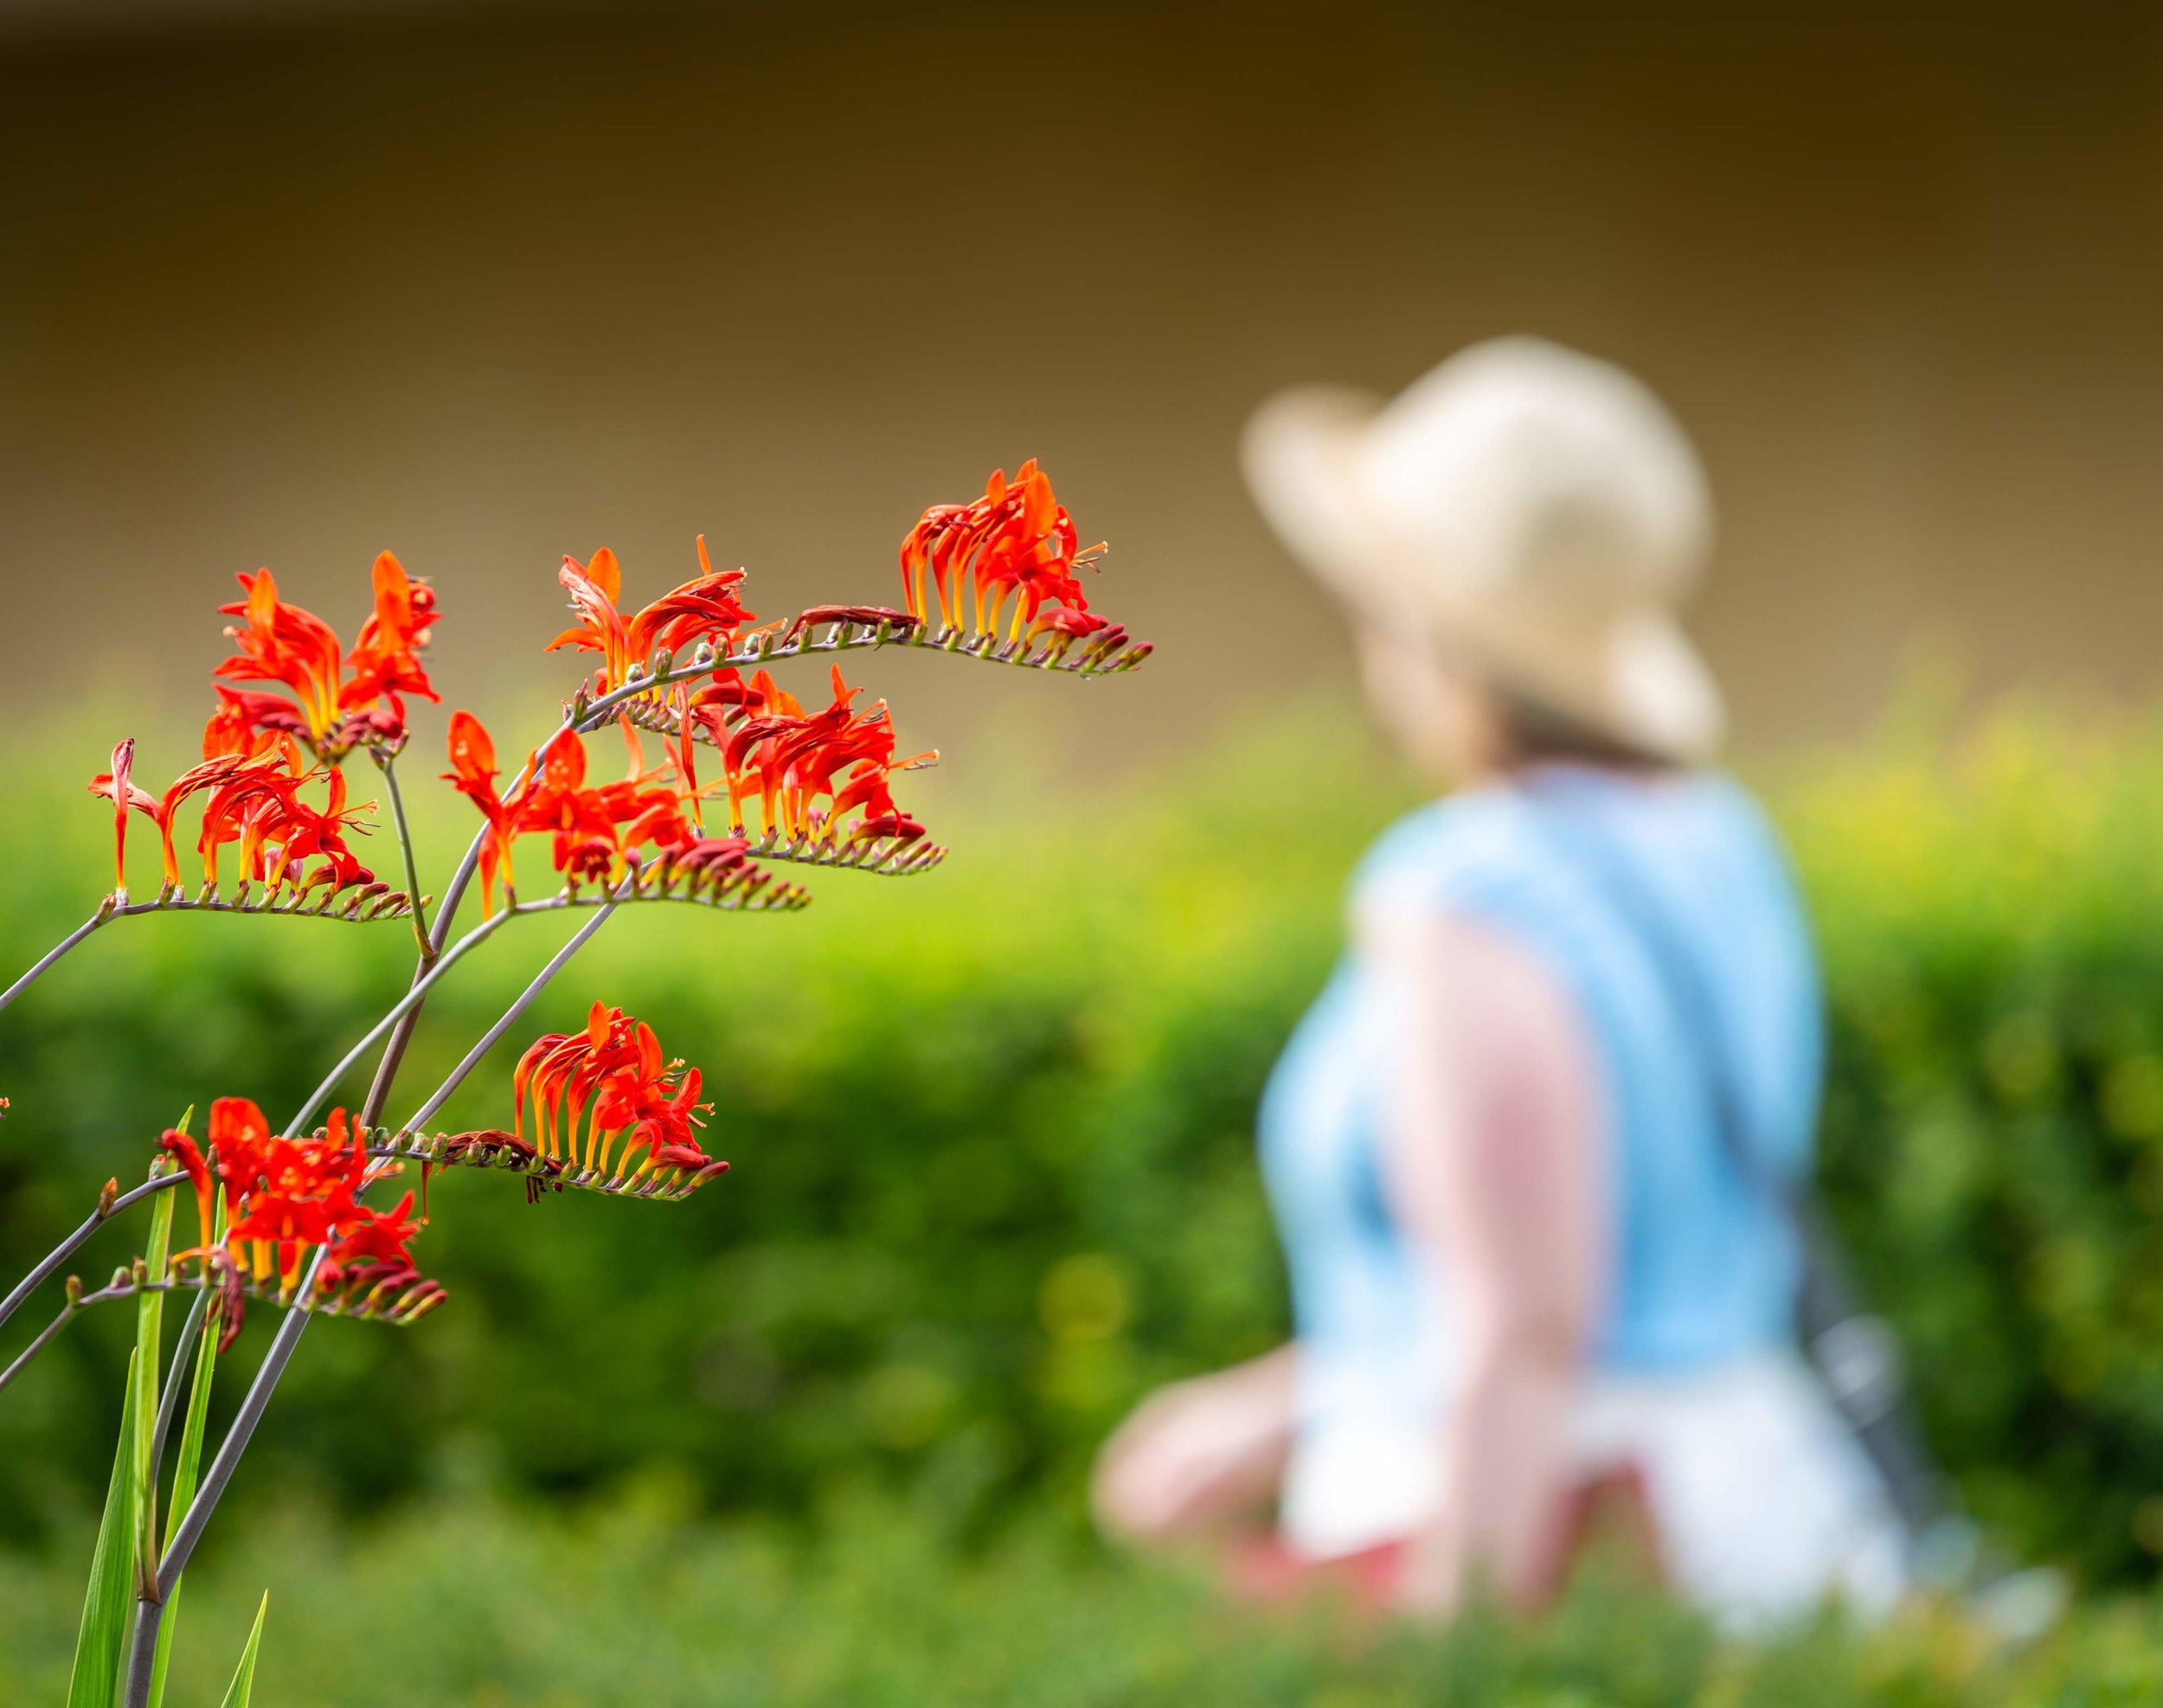 Botn Gdn red flower and figure **.jpg